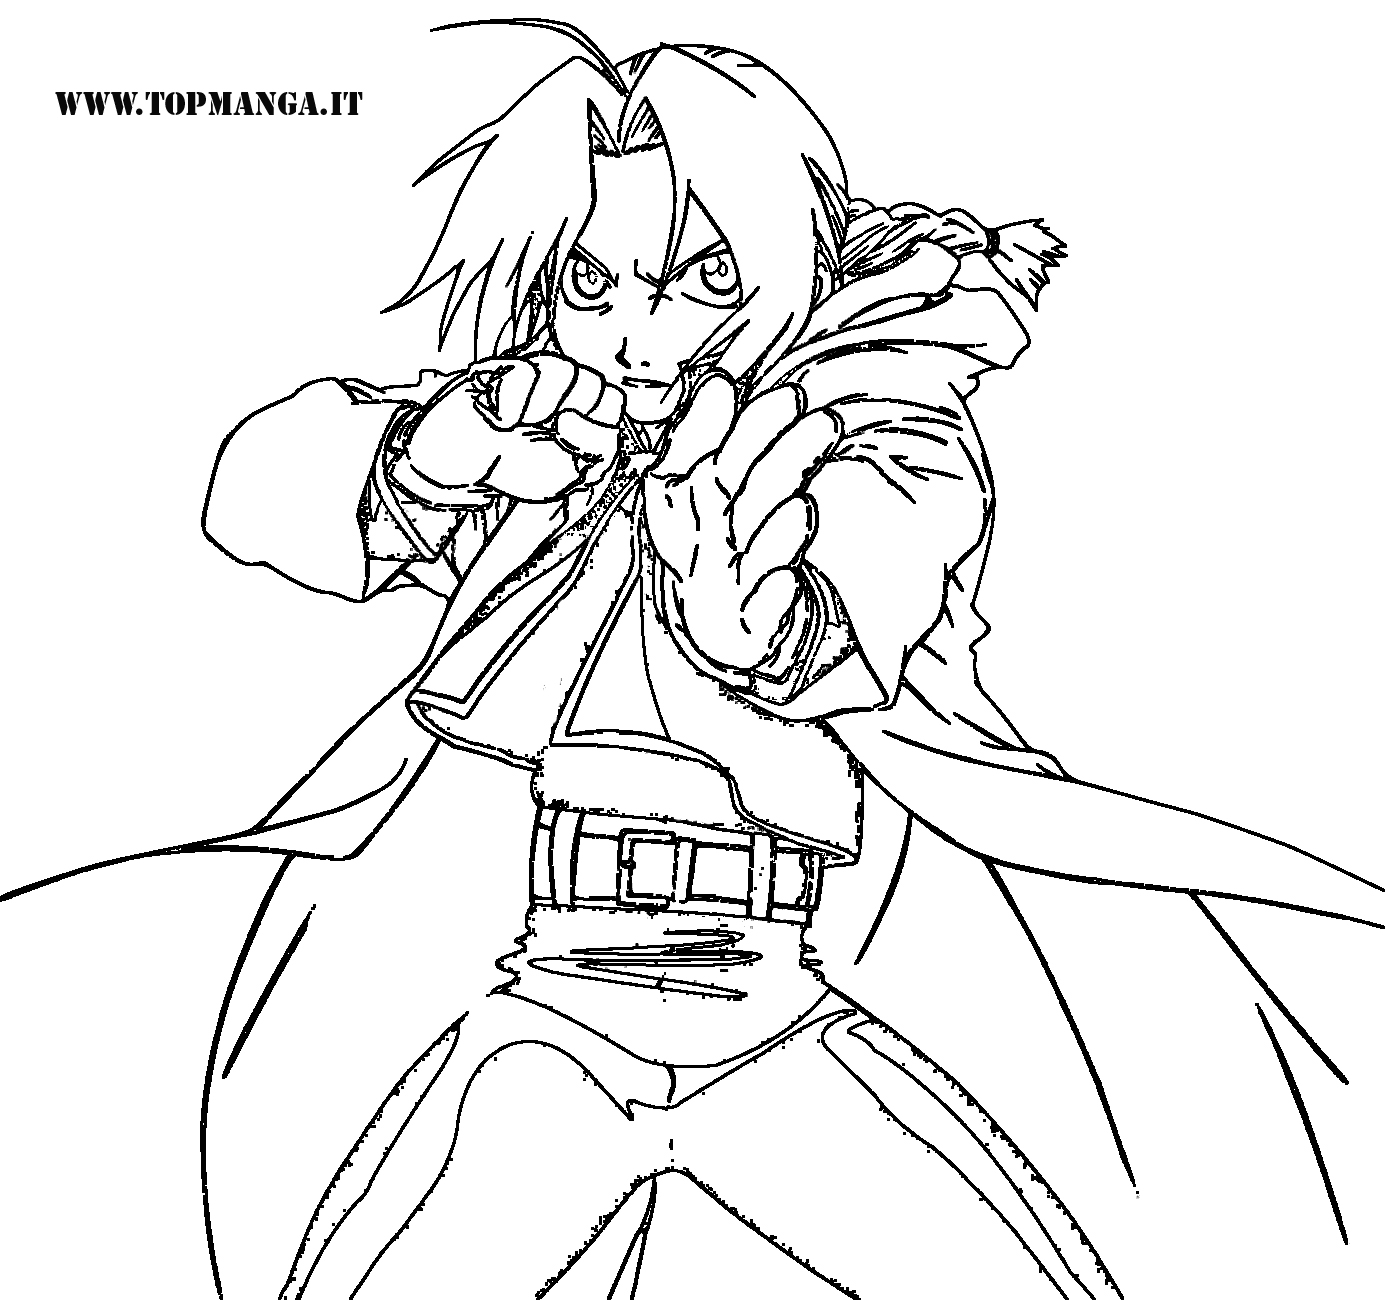 Full Metal Alchemist Coloring Pages Coloring Pages Fullmetal Alchemist Coloring Pages